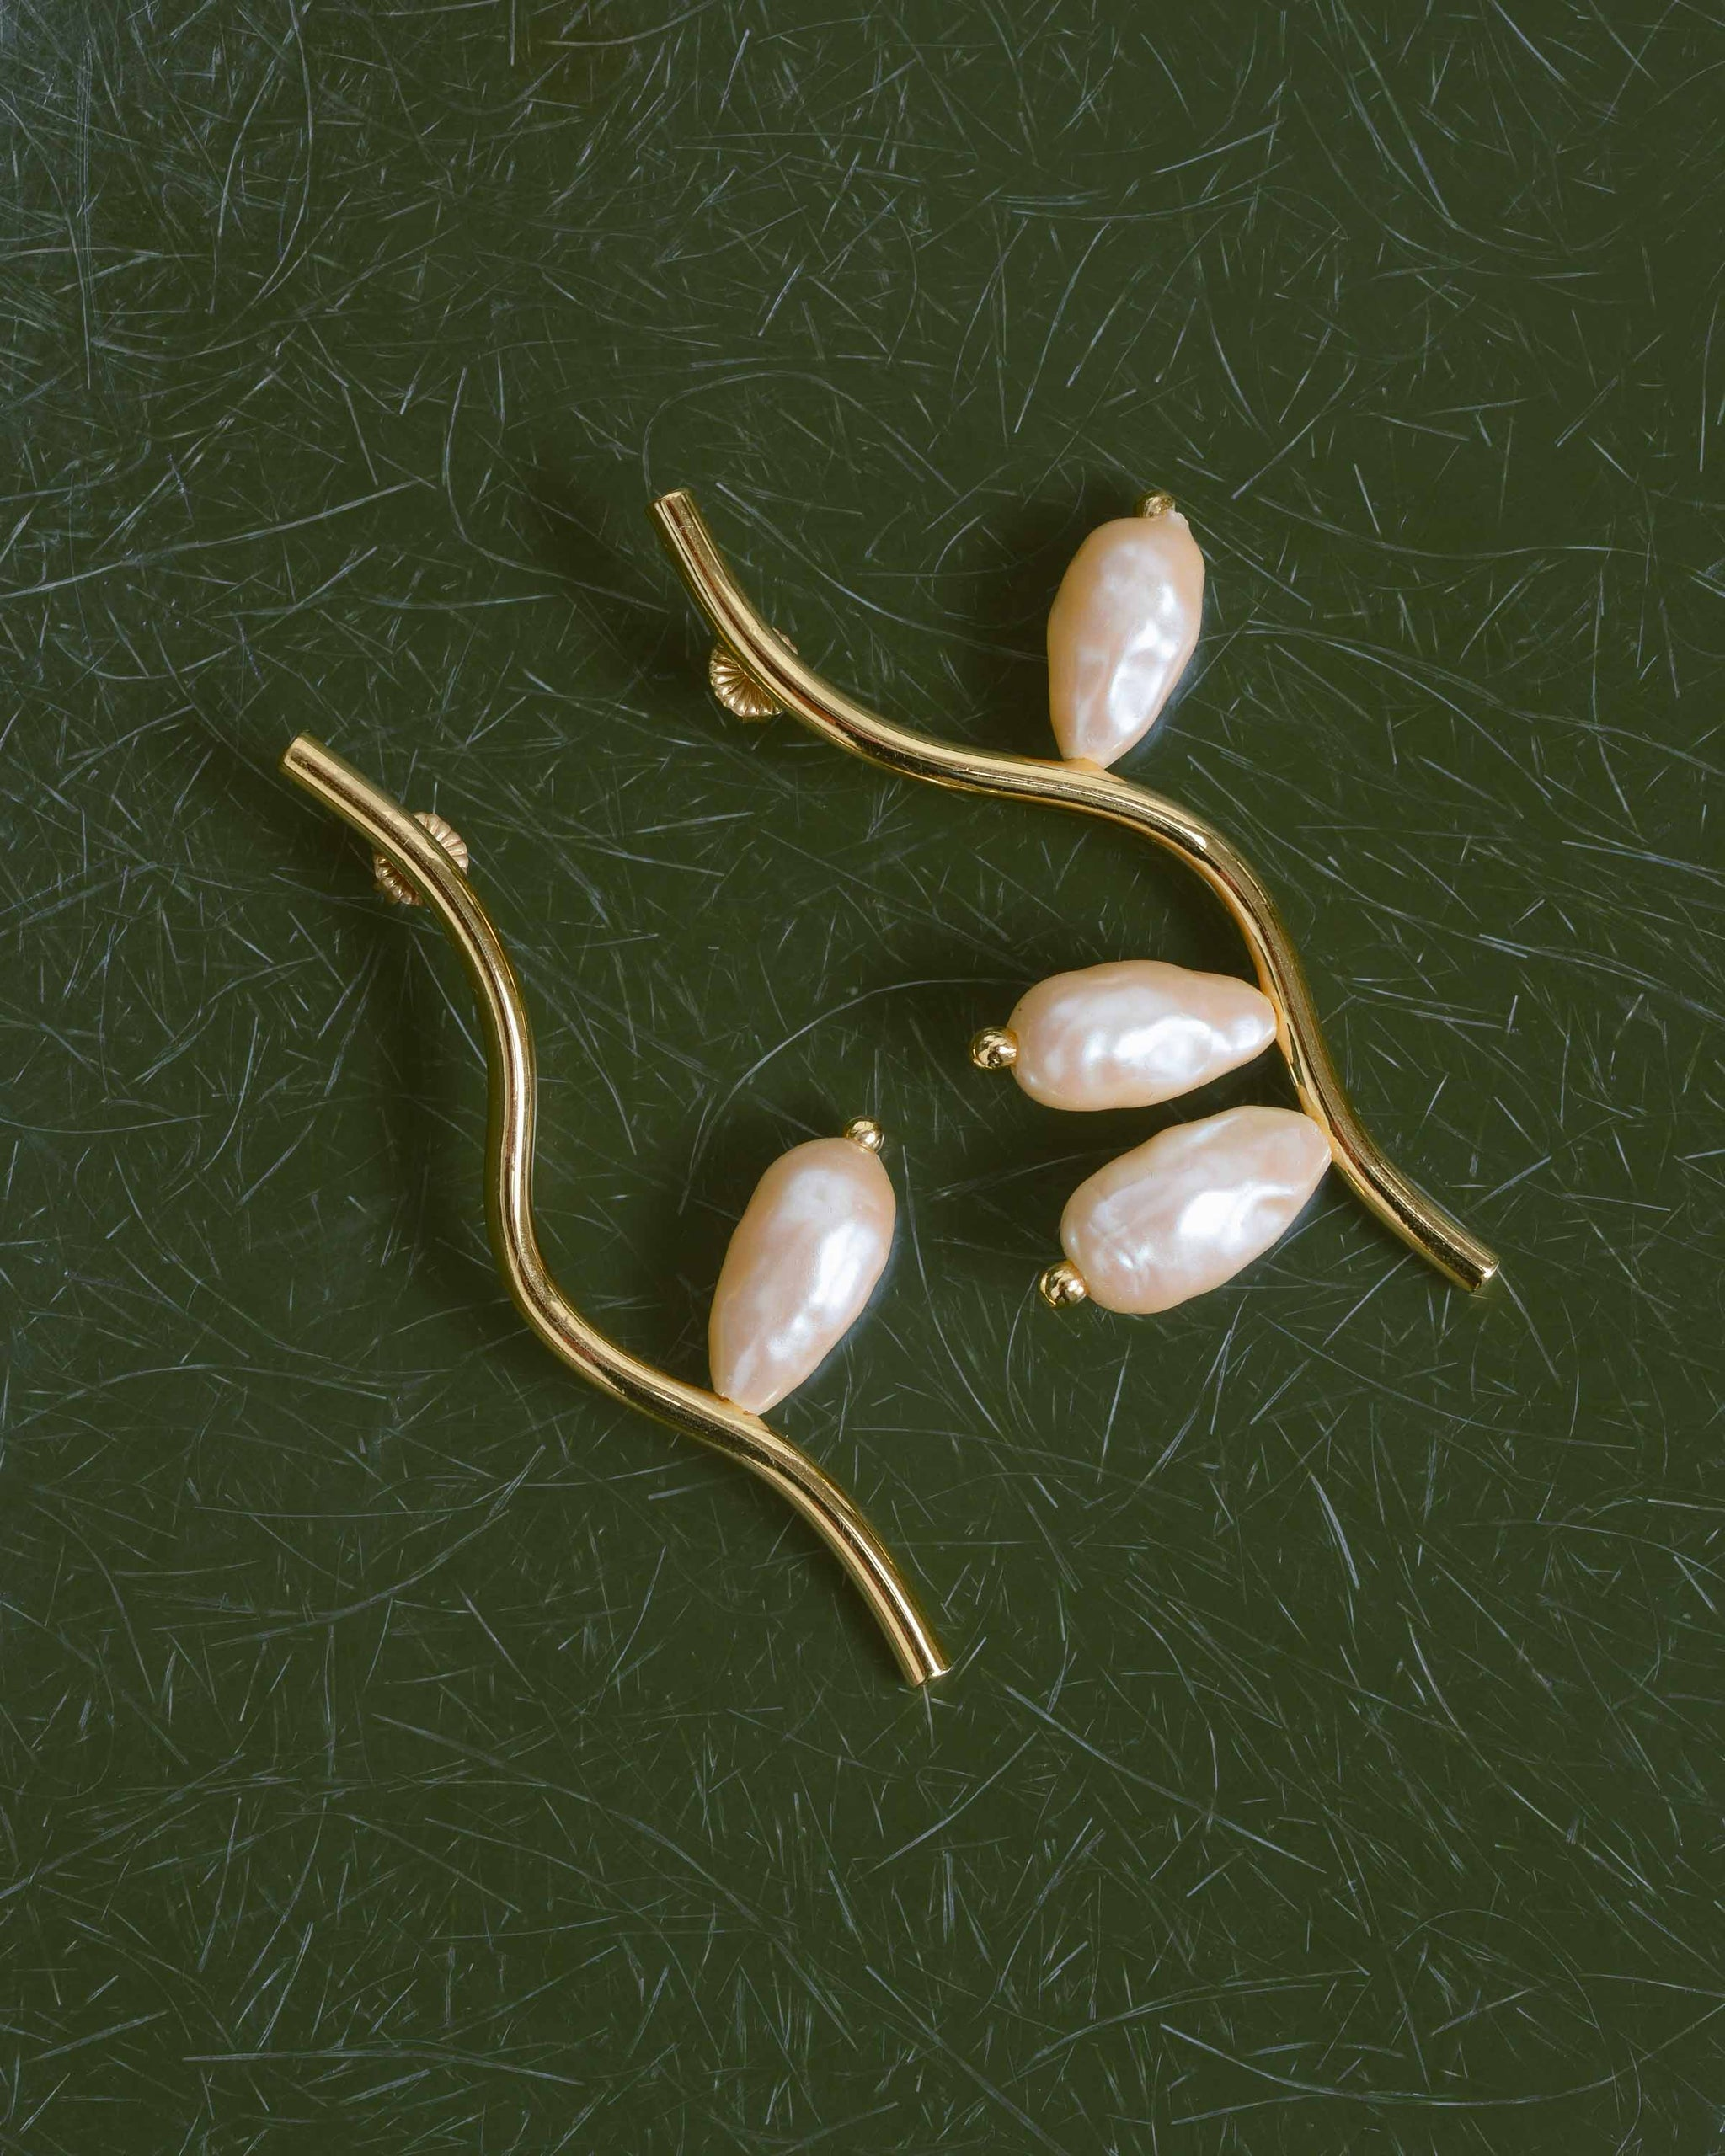 14k Gold Plated Brass Branch Earrings